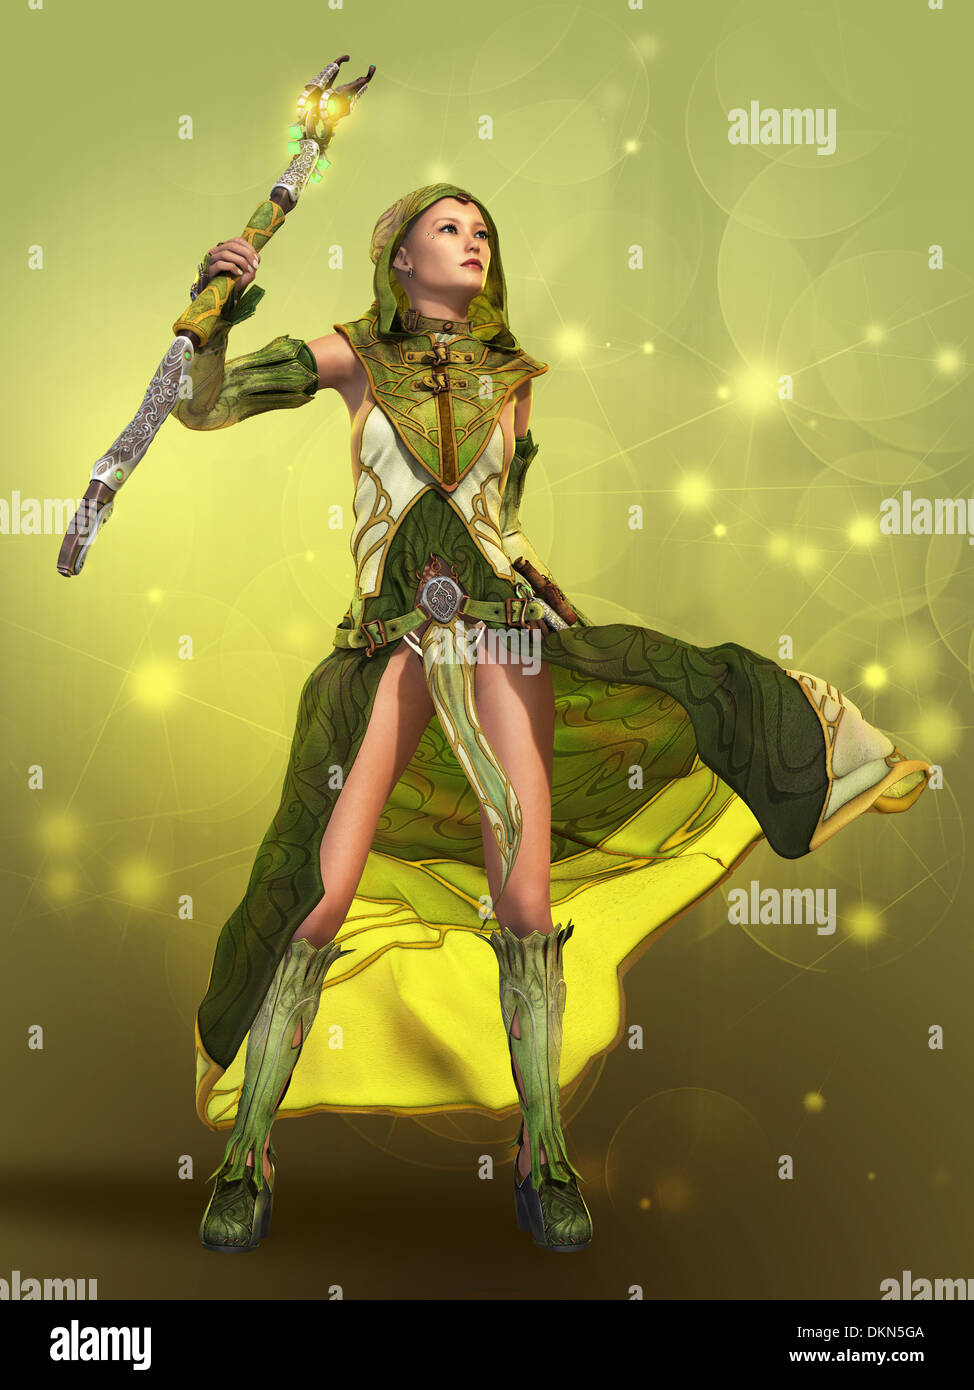 3D computer graphics of a young woman in a fantasy dress - Stock Image